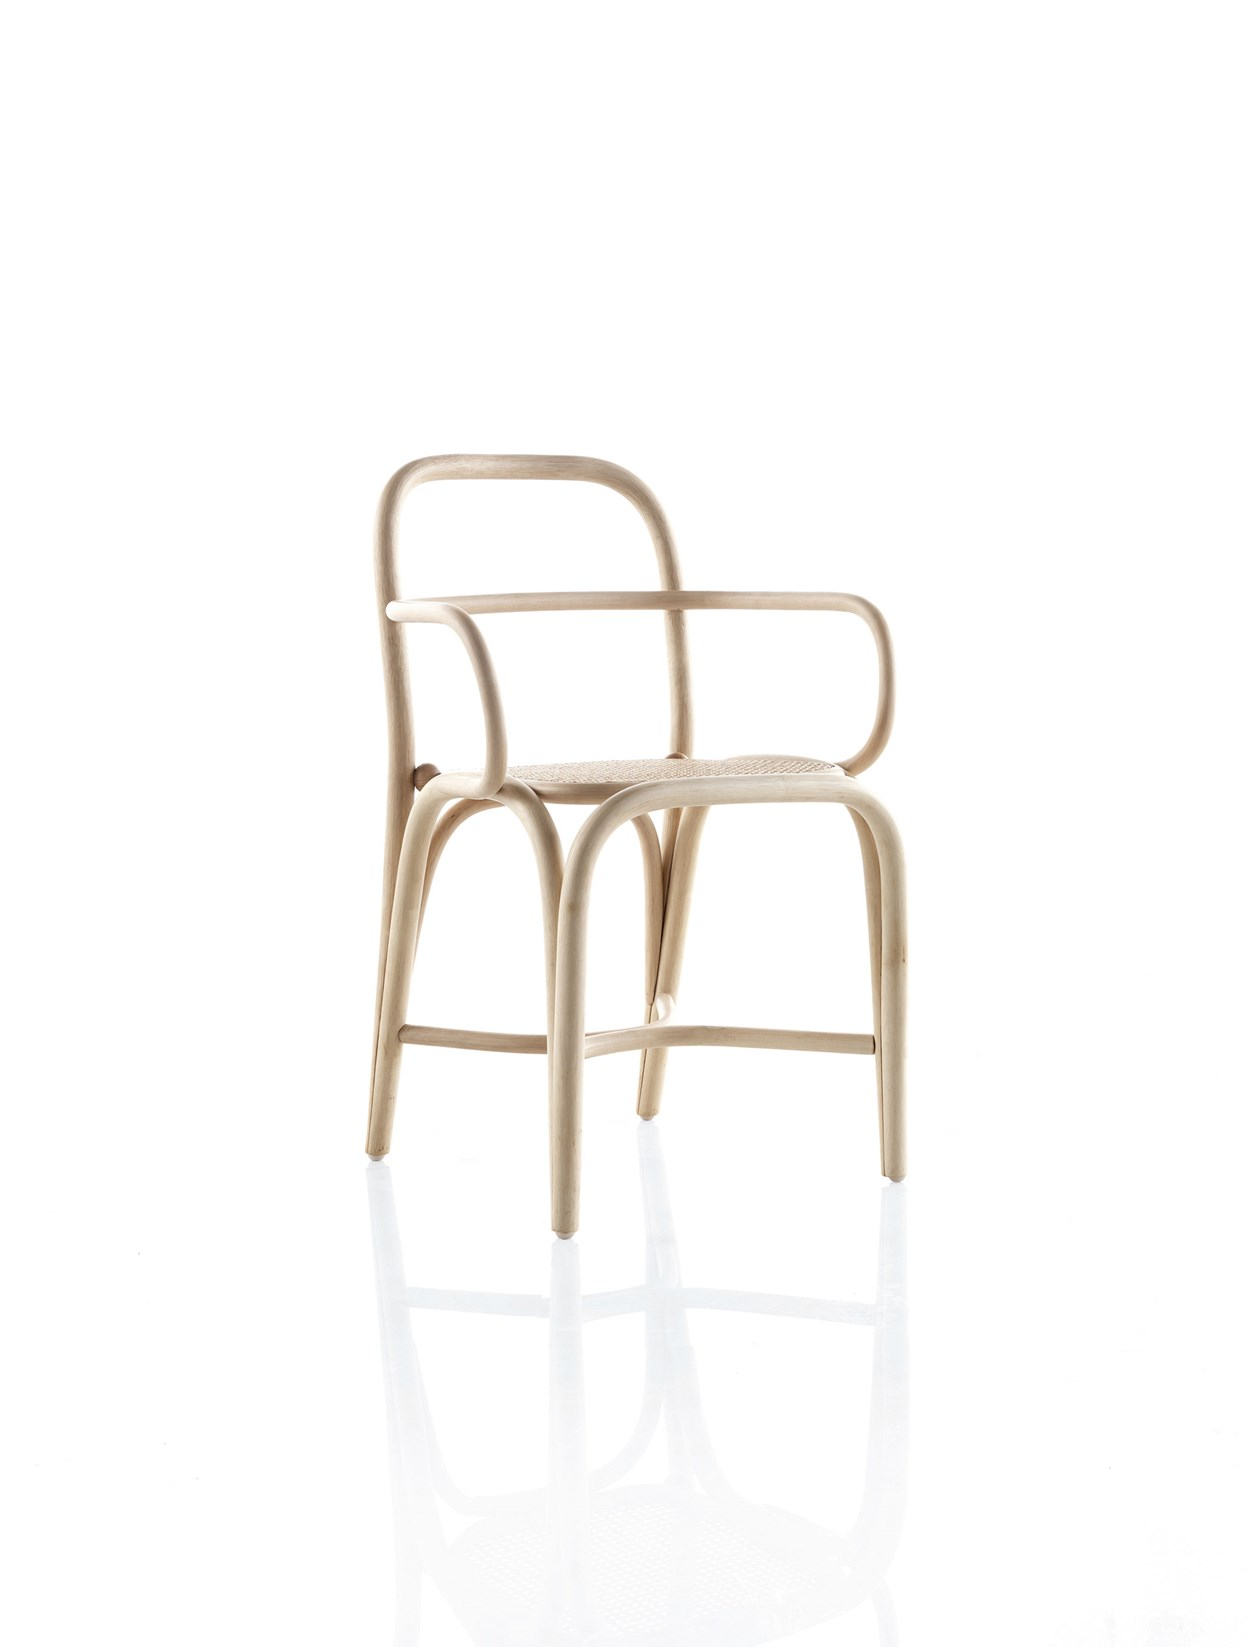 expormim-fontal-indoor-chair.jpg